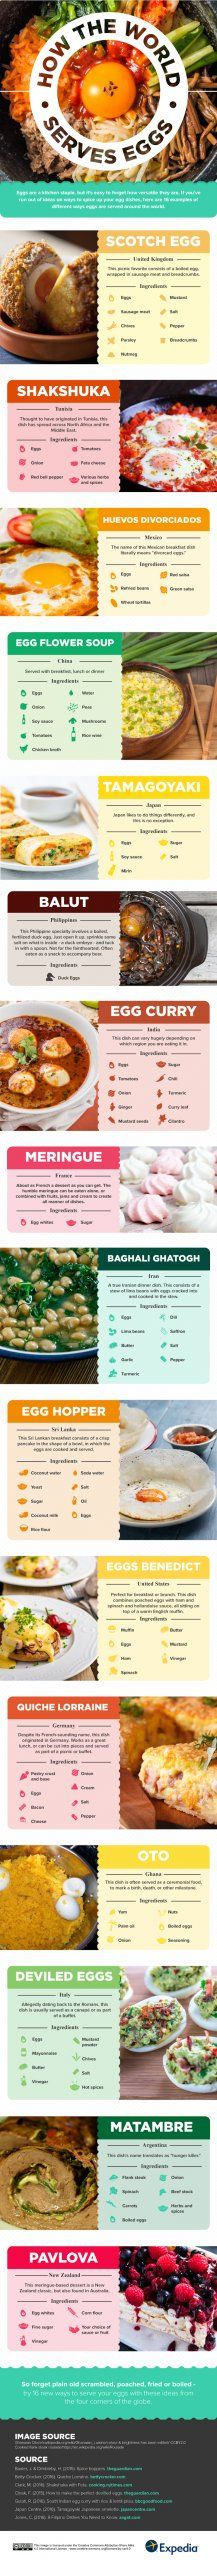 The 25 best breakfast around the world ideas on pinterest the 25 best breakfast around the world ideas on pinterest around the world food breakfast places around me and breakfast haggis recipes forumfinder Images